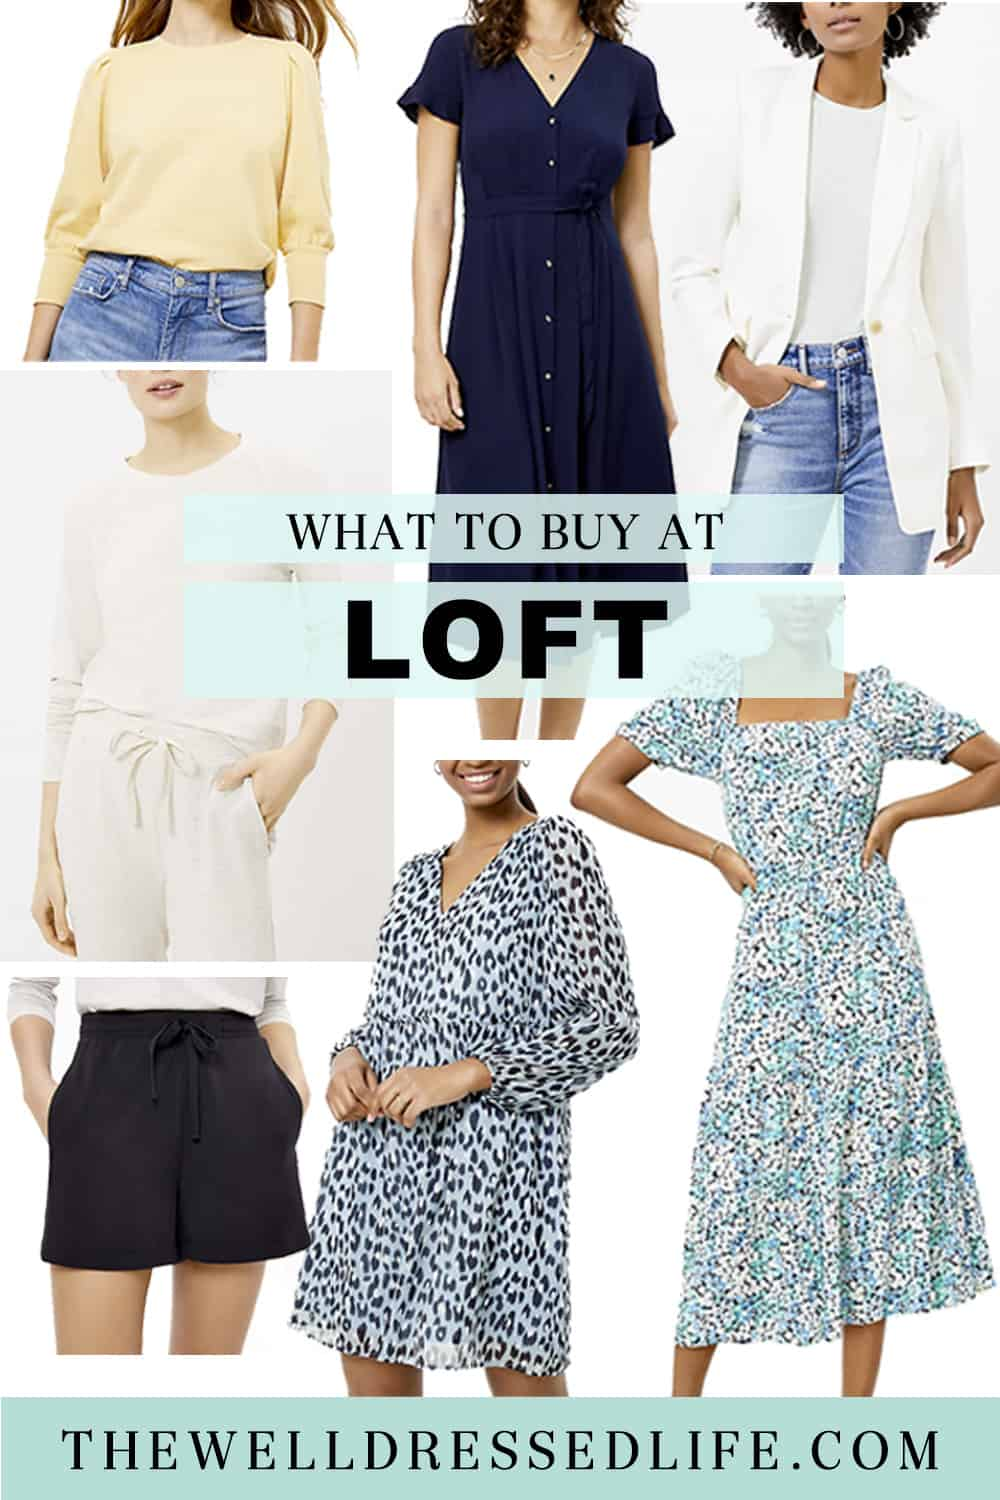 What to Buy at LOFT